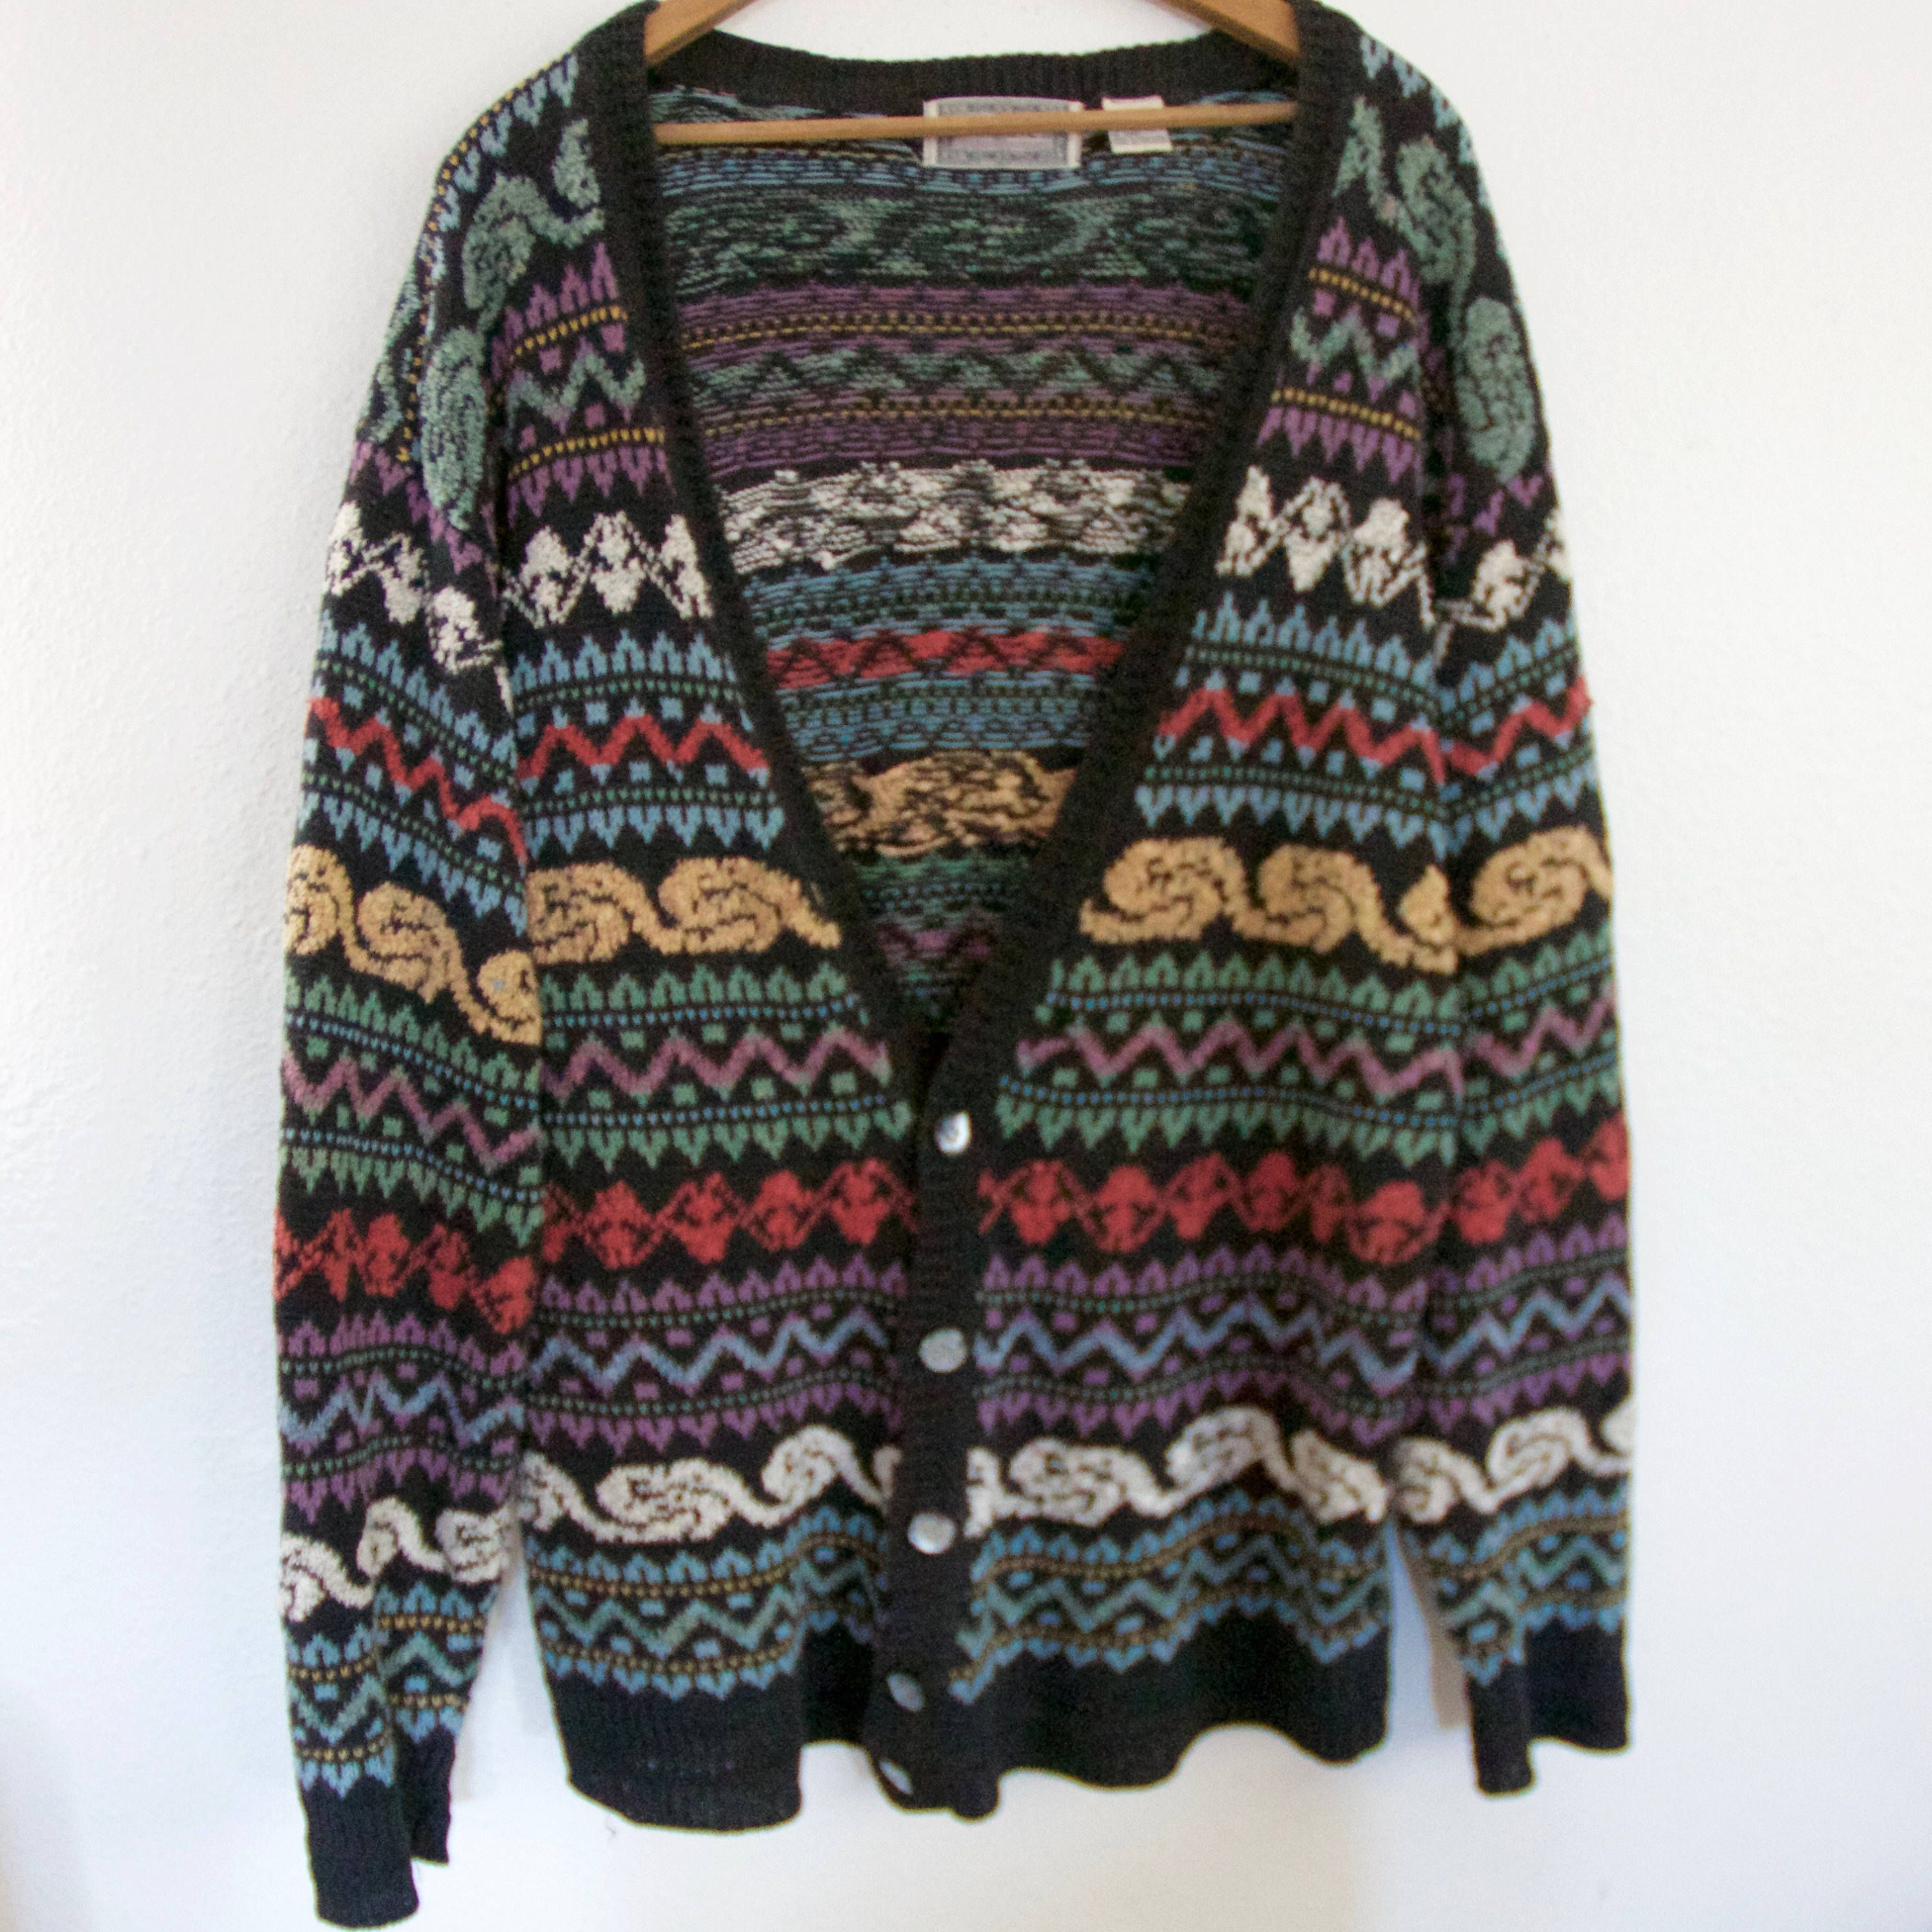 892a49002782a 80s Tribal Concrete Mix Cardigan Sweater   Thick Knit Geometric Tribal Aztec  Abalone Shell Buttons   Oversized Small Unisex Crochet Jacket by ...